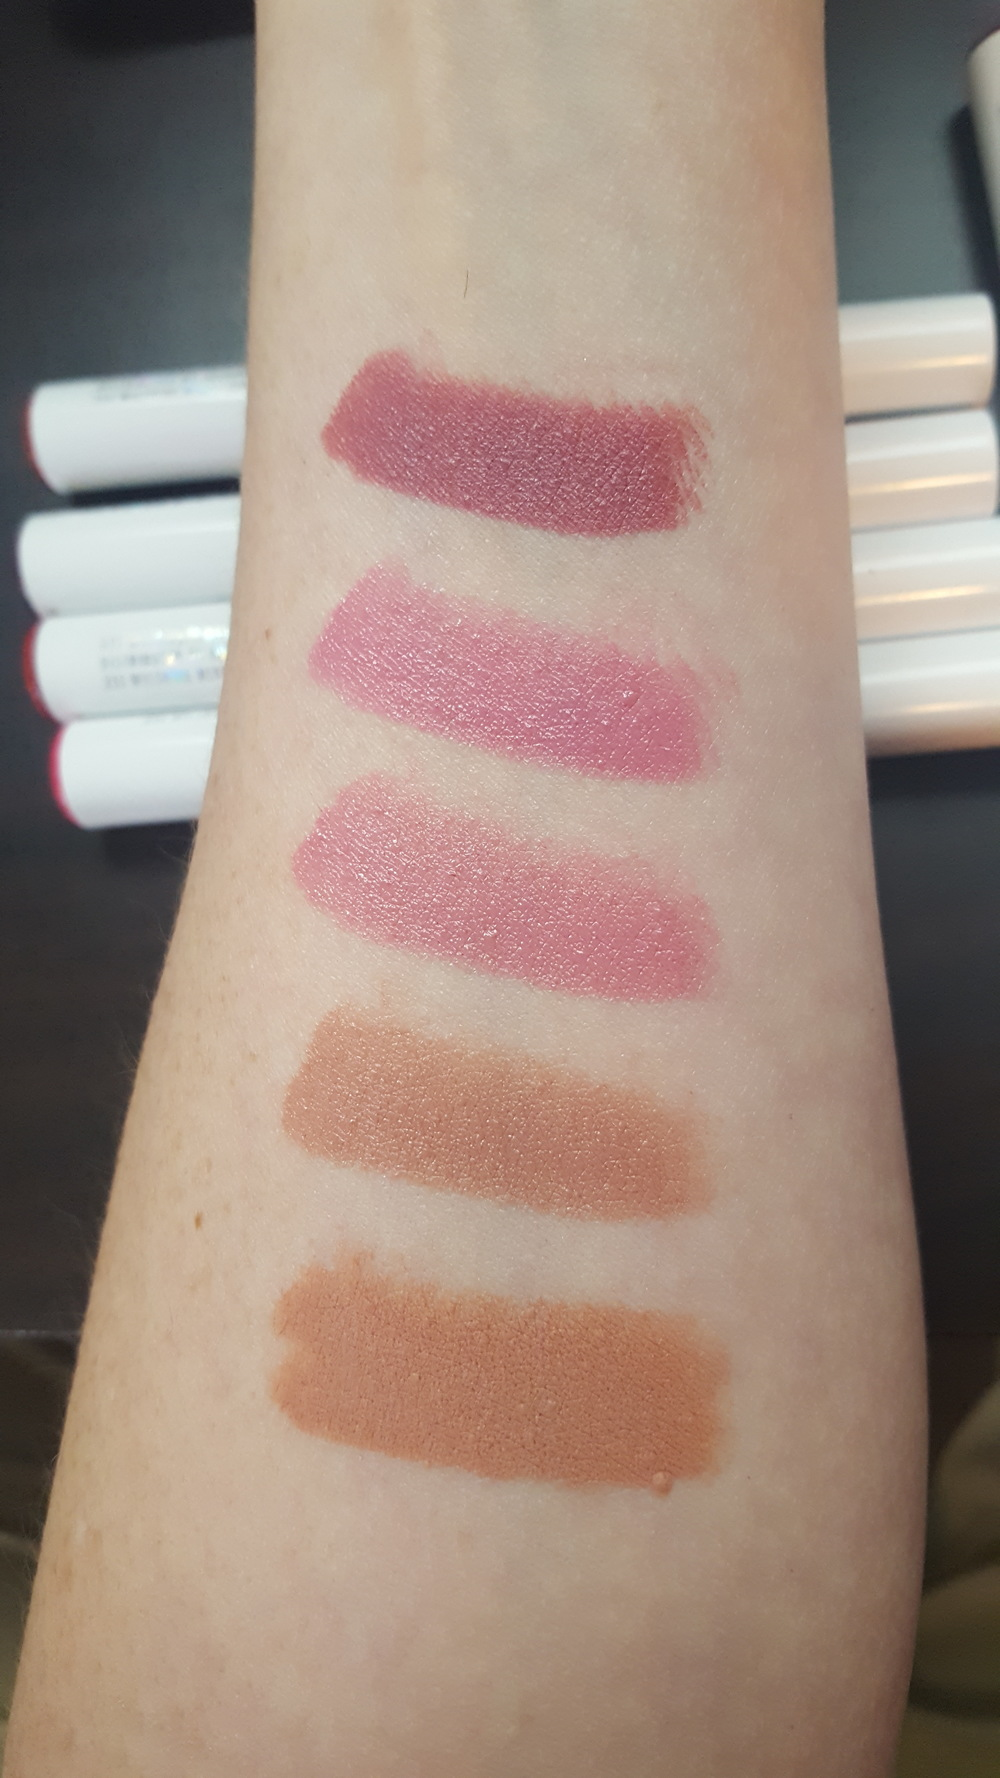 From top to bottom: Lumiere, Bound 1, Bound 2, Choker, She Bad - Nudes/Neutrals